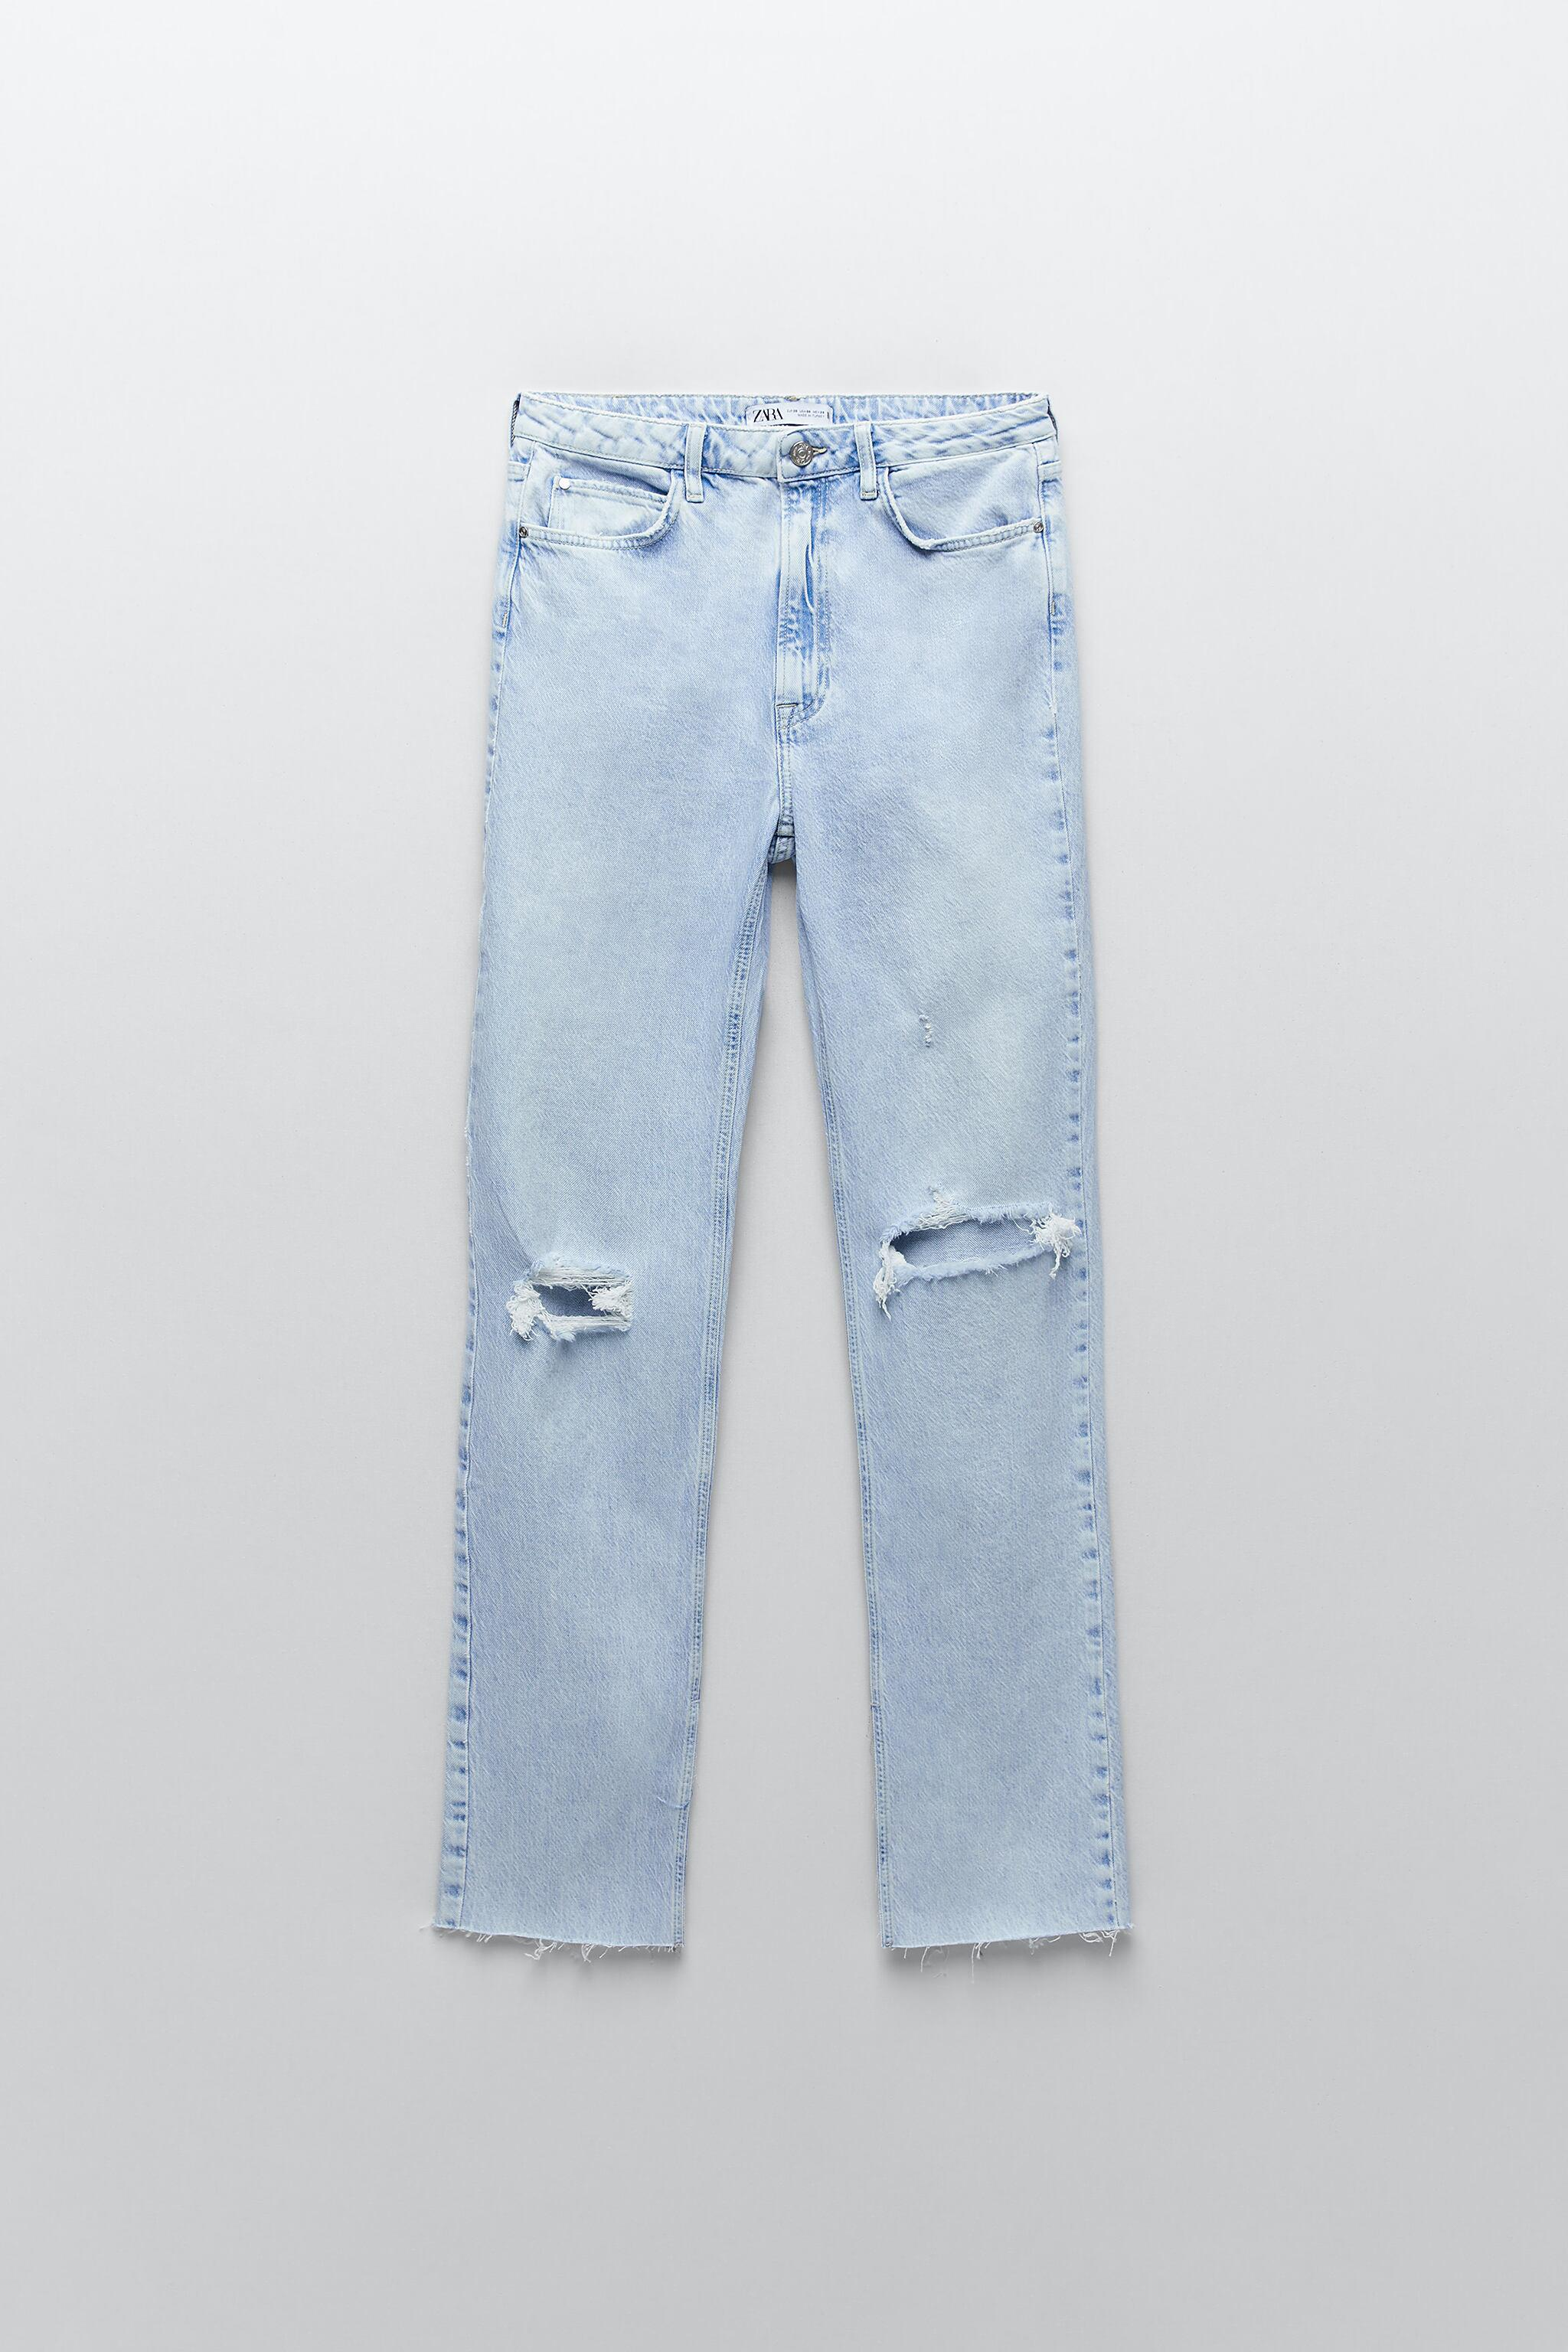 Z1975 FLARED RIPPED SLIM FIT JEANS 6